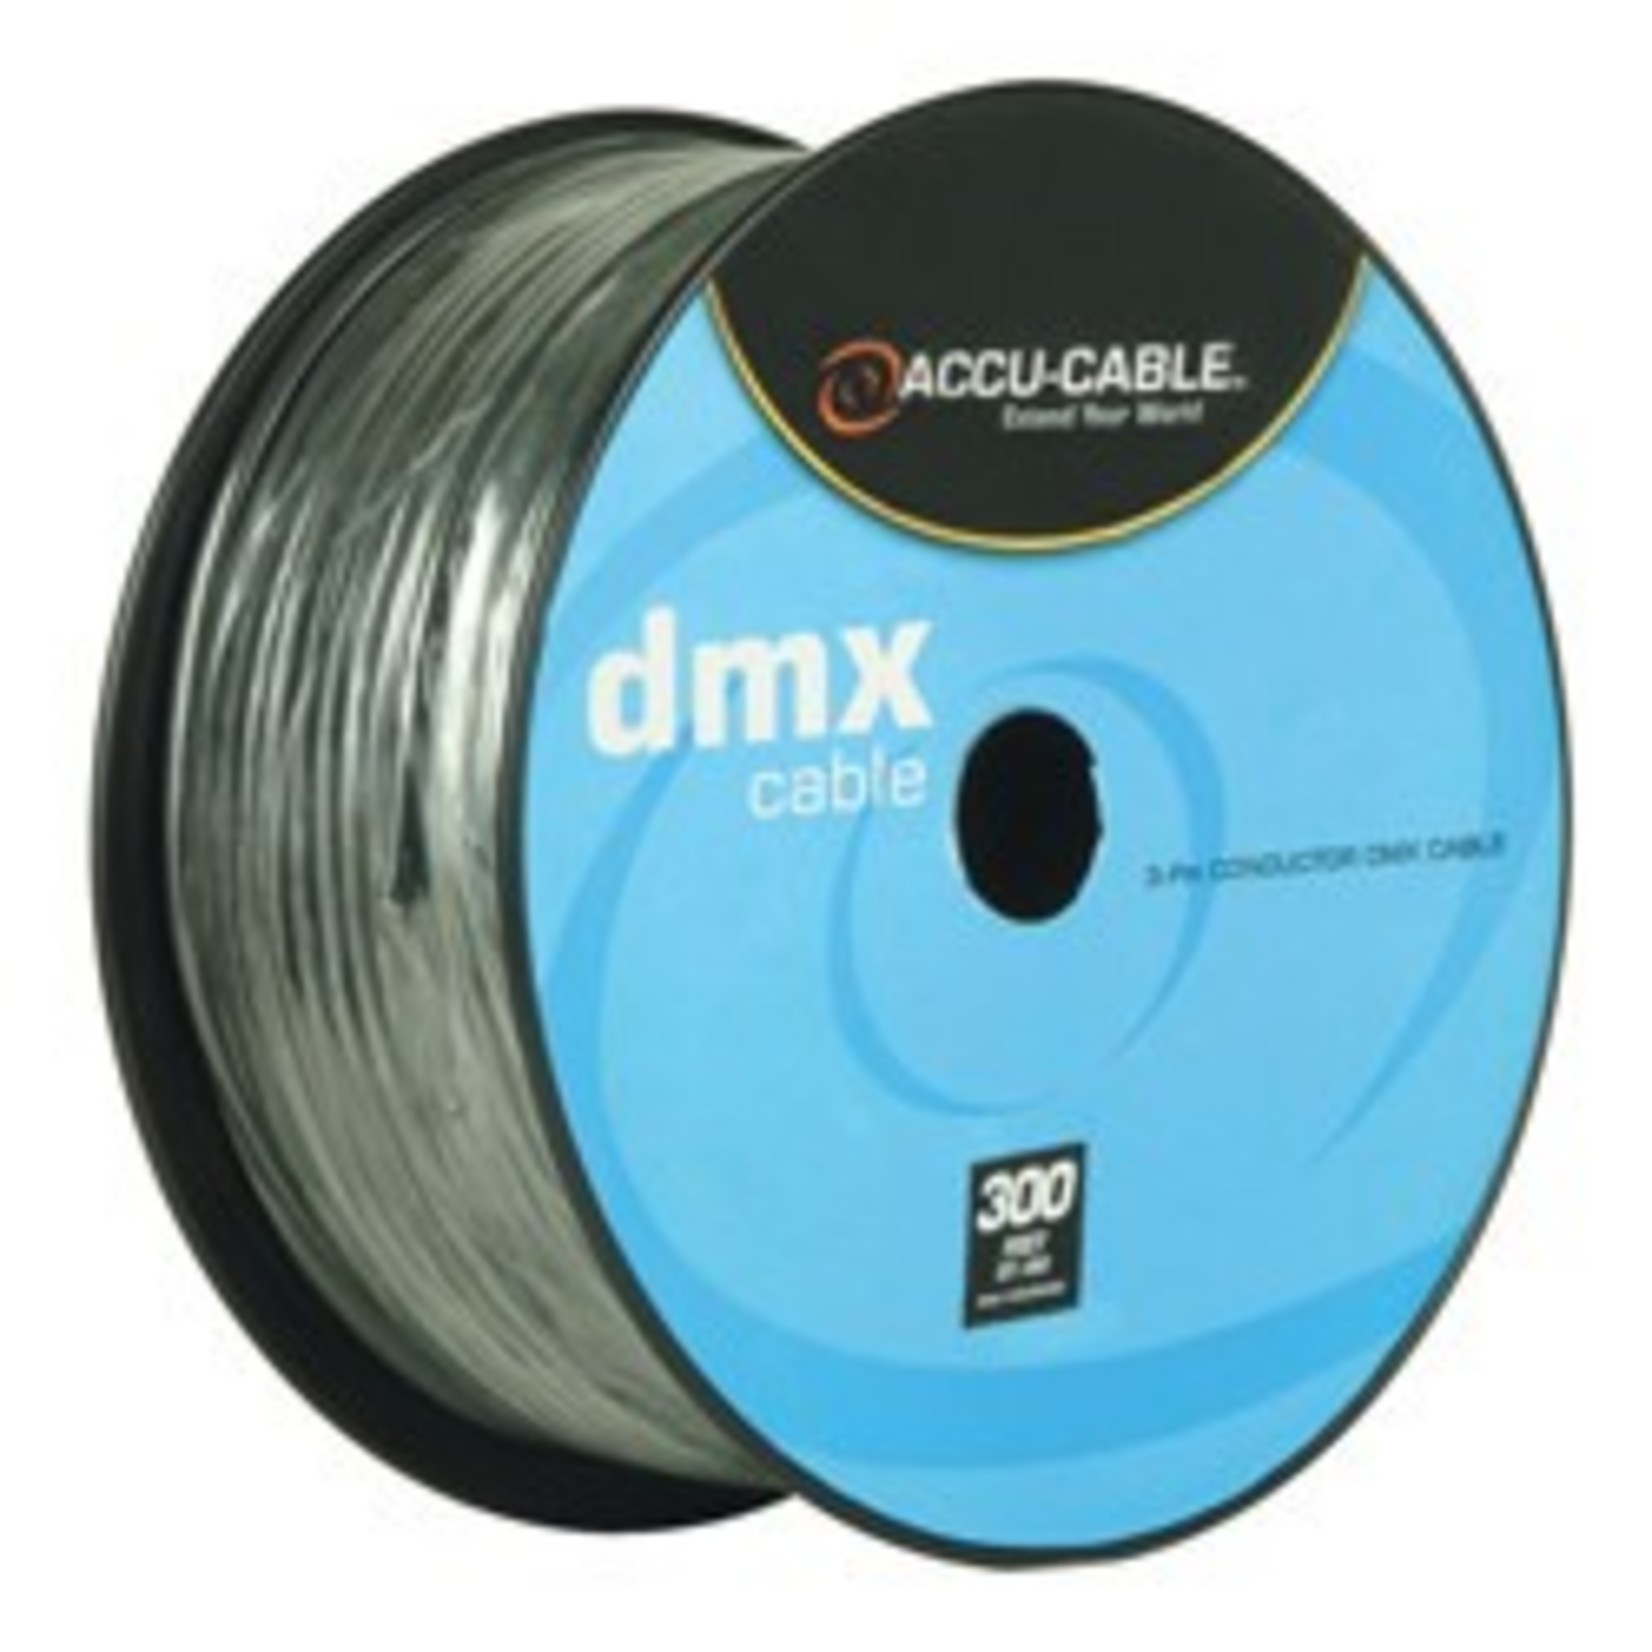 ACCU-CABLE CABLE DMX ACCU-CABLE